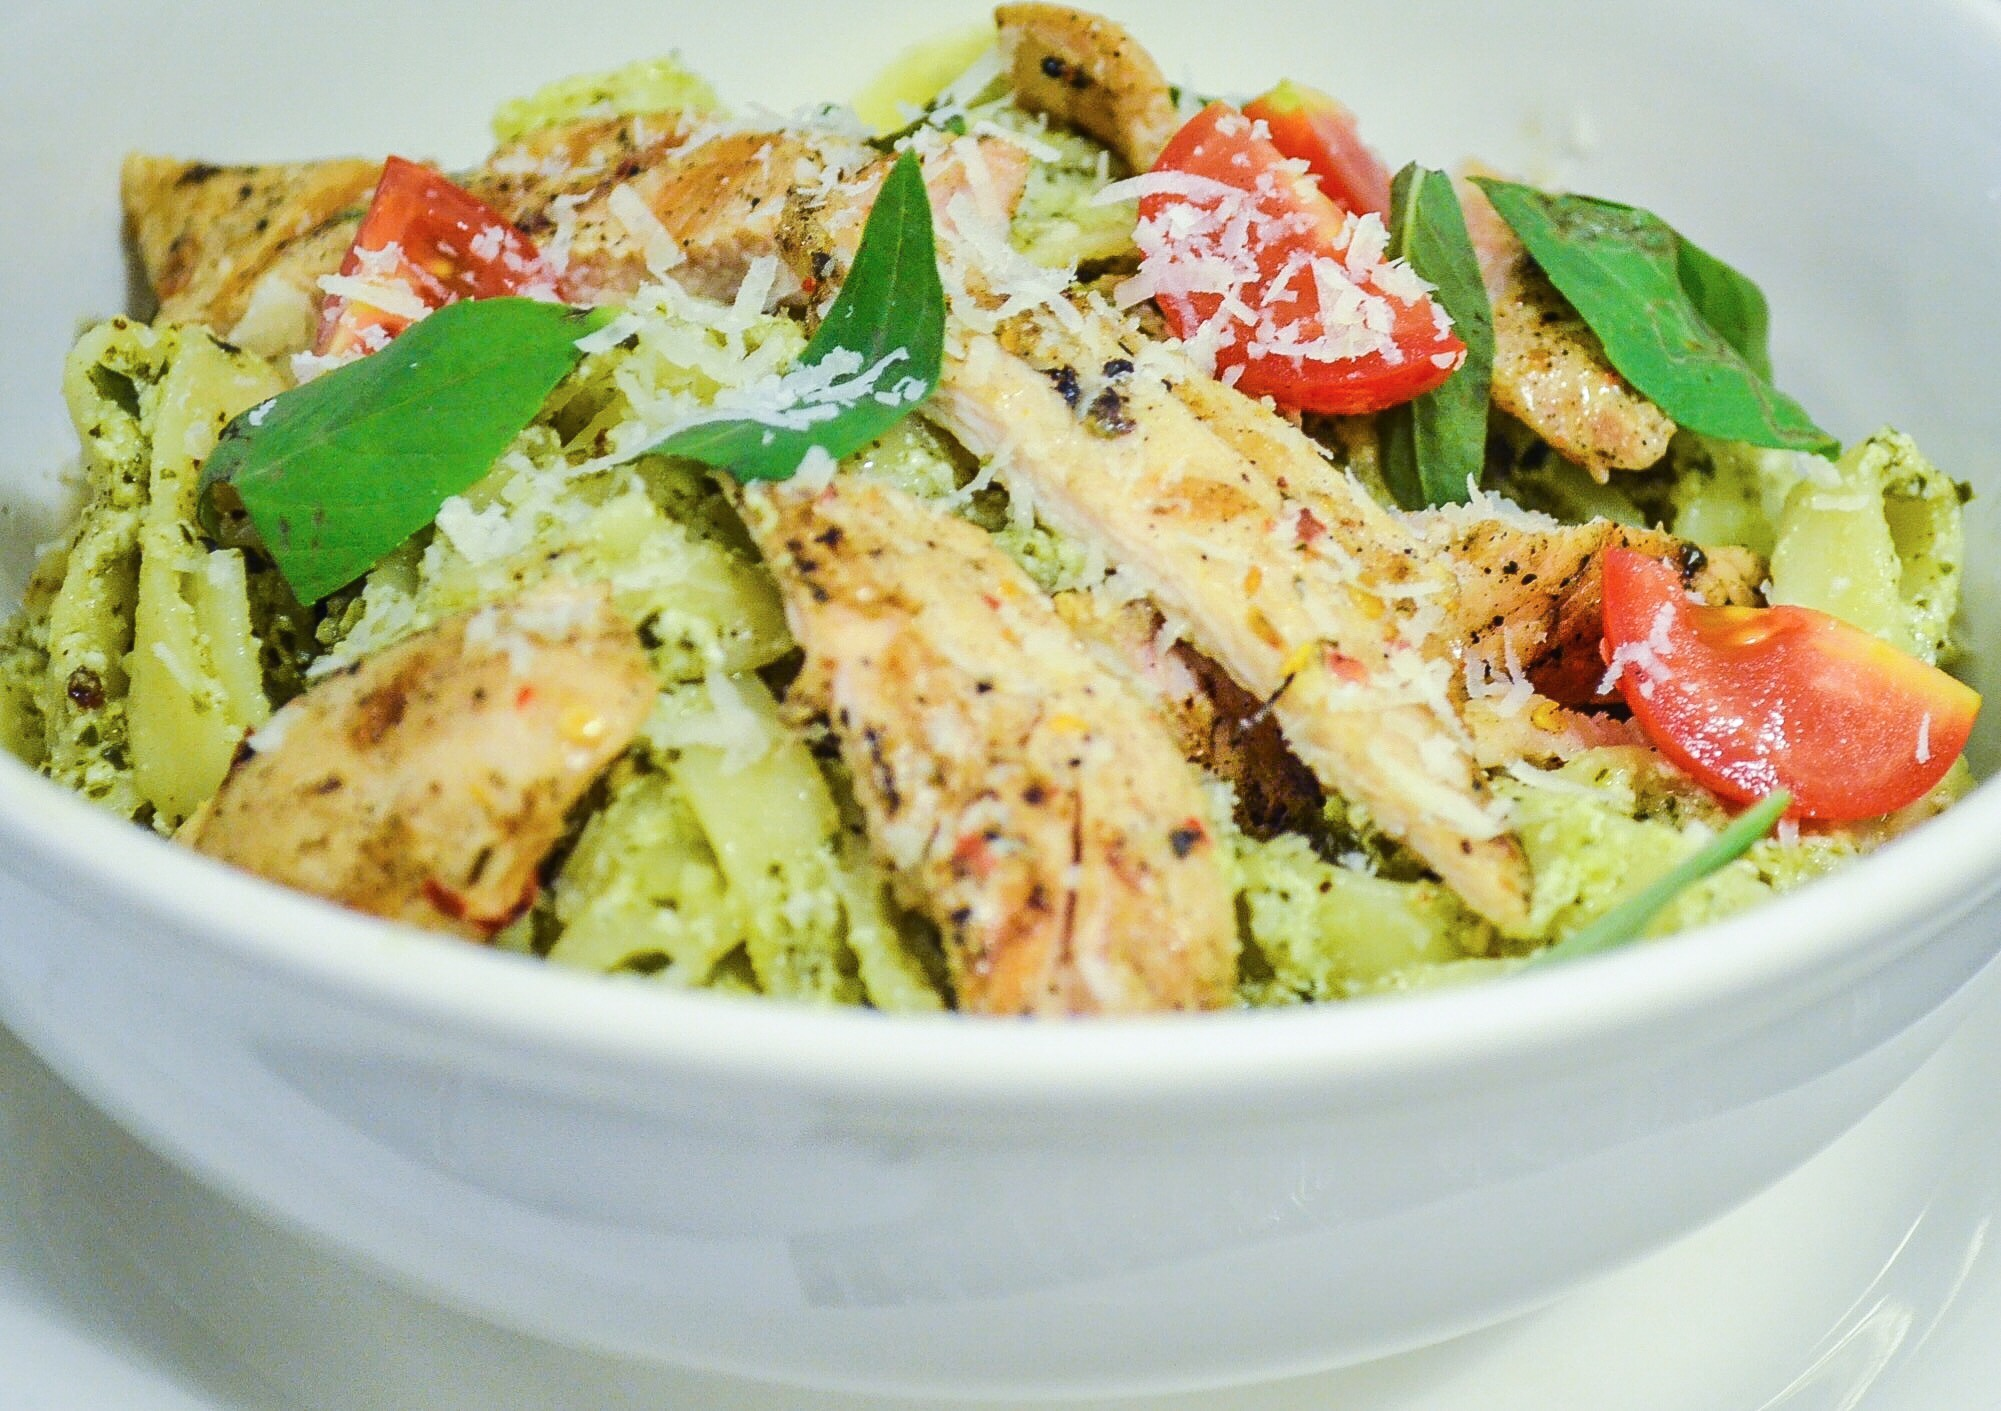 Fresh tasting Pesto Fettuccine with grilled chicken at The Pantry by The Polo Lounge's Mall One location